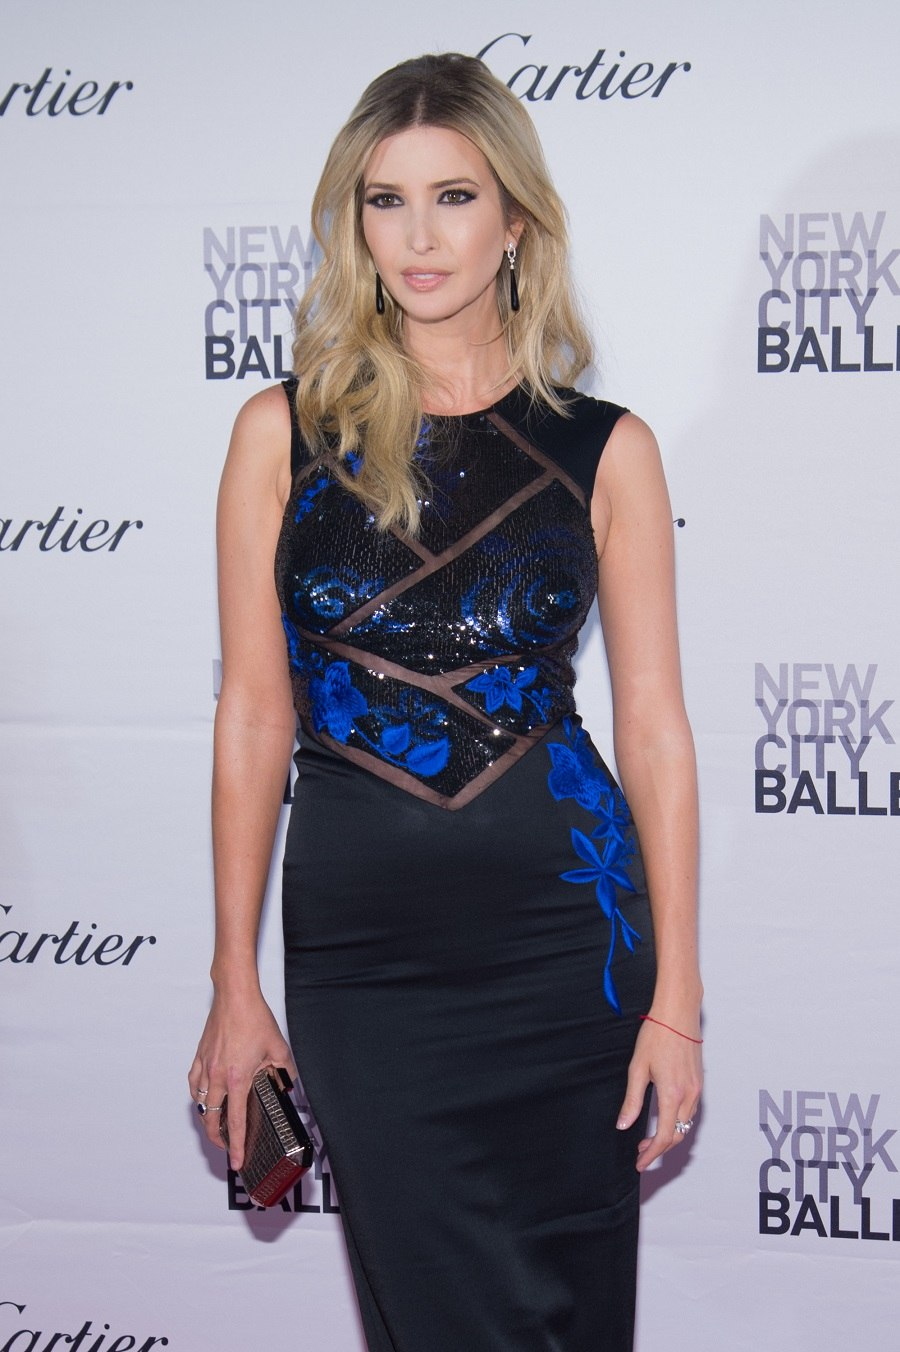 Ivanka Trump attends the 2015 New York City Ballet Fall Gala at the David H. Koch Theater